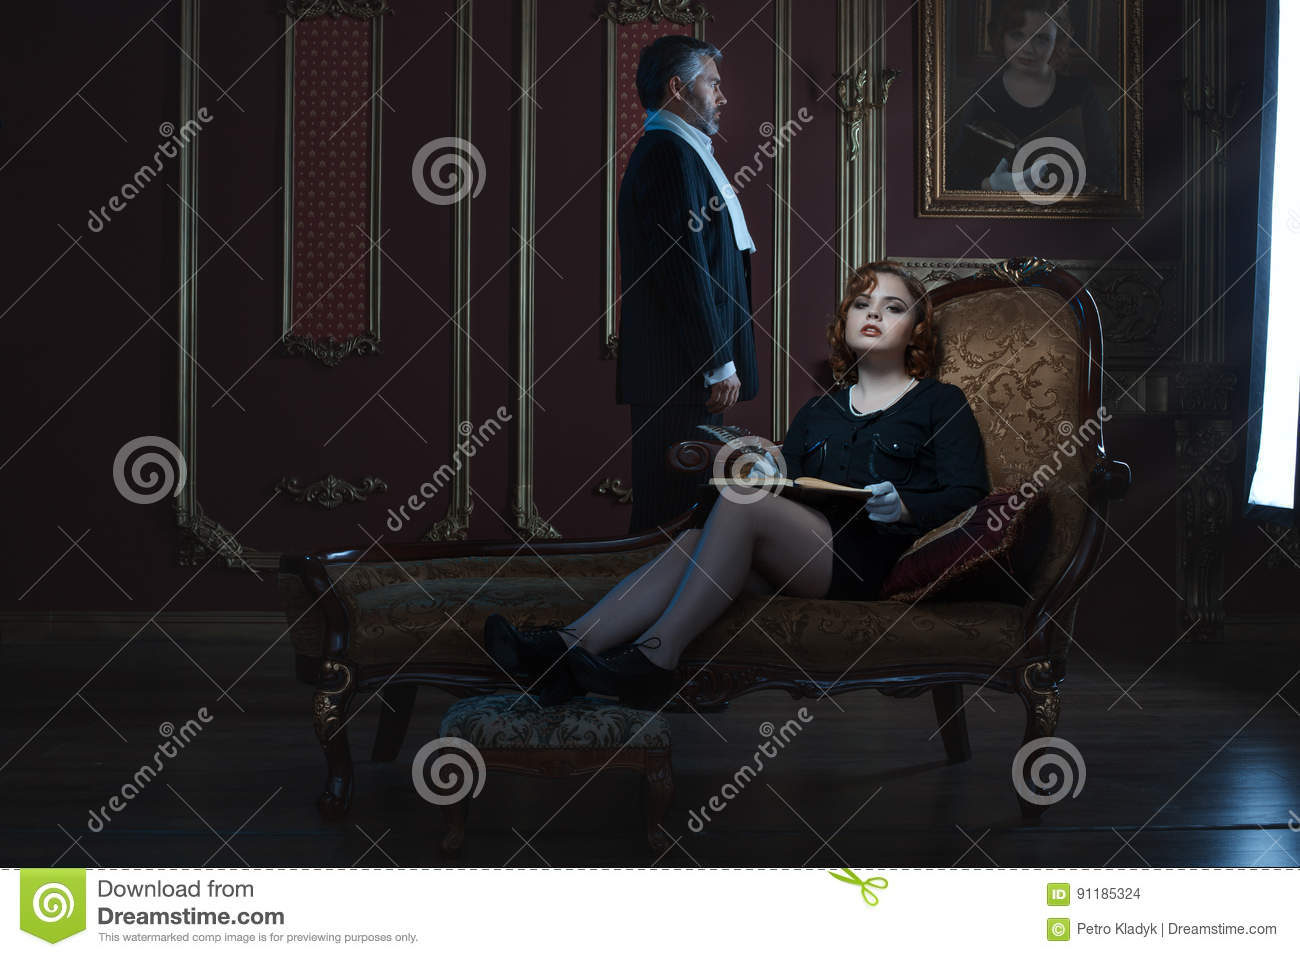 Rich and noble woman and man.